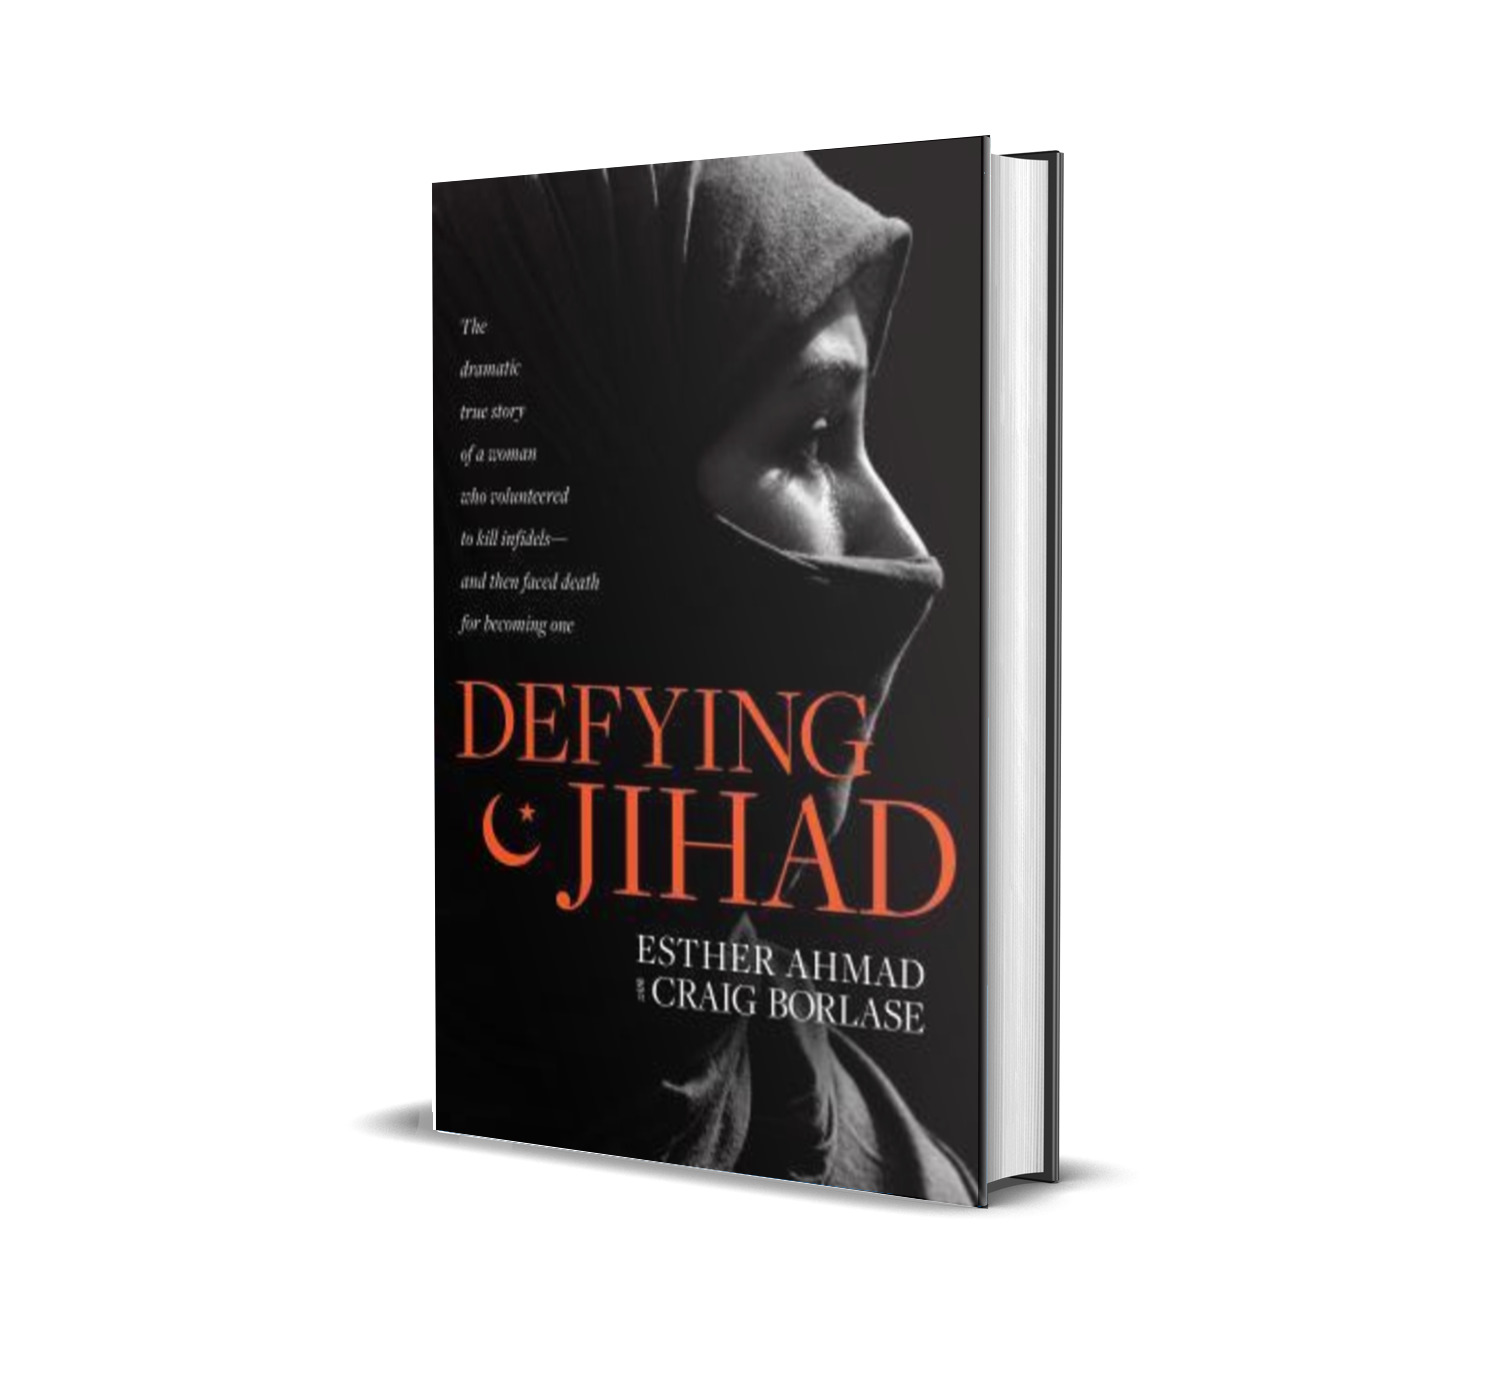 Defying Jihad: The Dramatic True Story of a Woman Who Volunteered to Kill Infidels—And Then Faced Death for Becoming One - Esther Ahmad